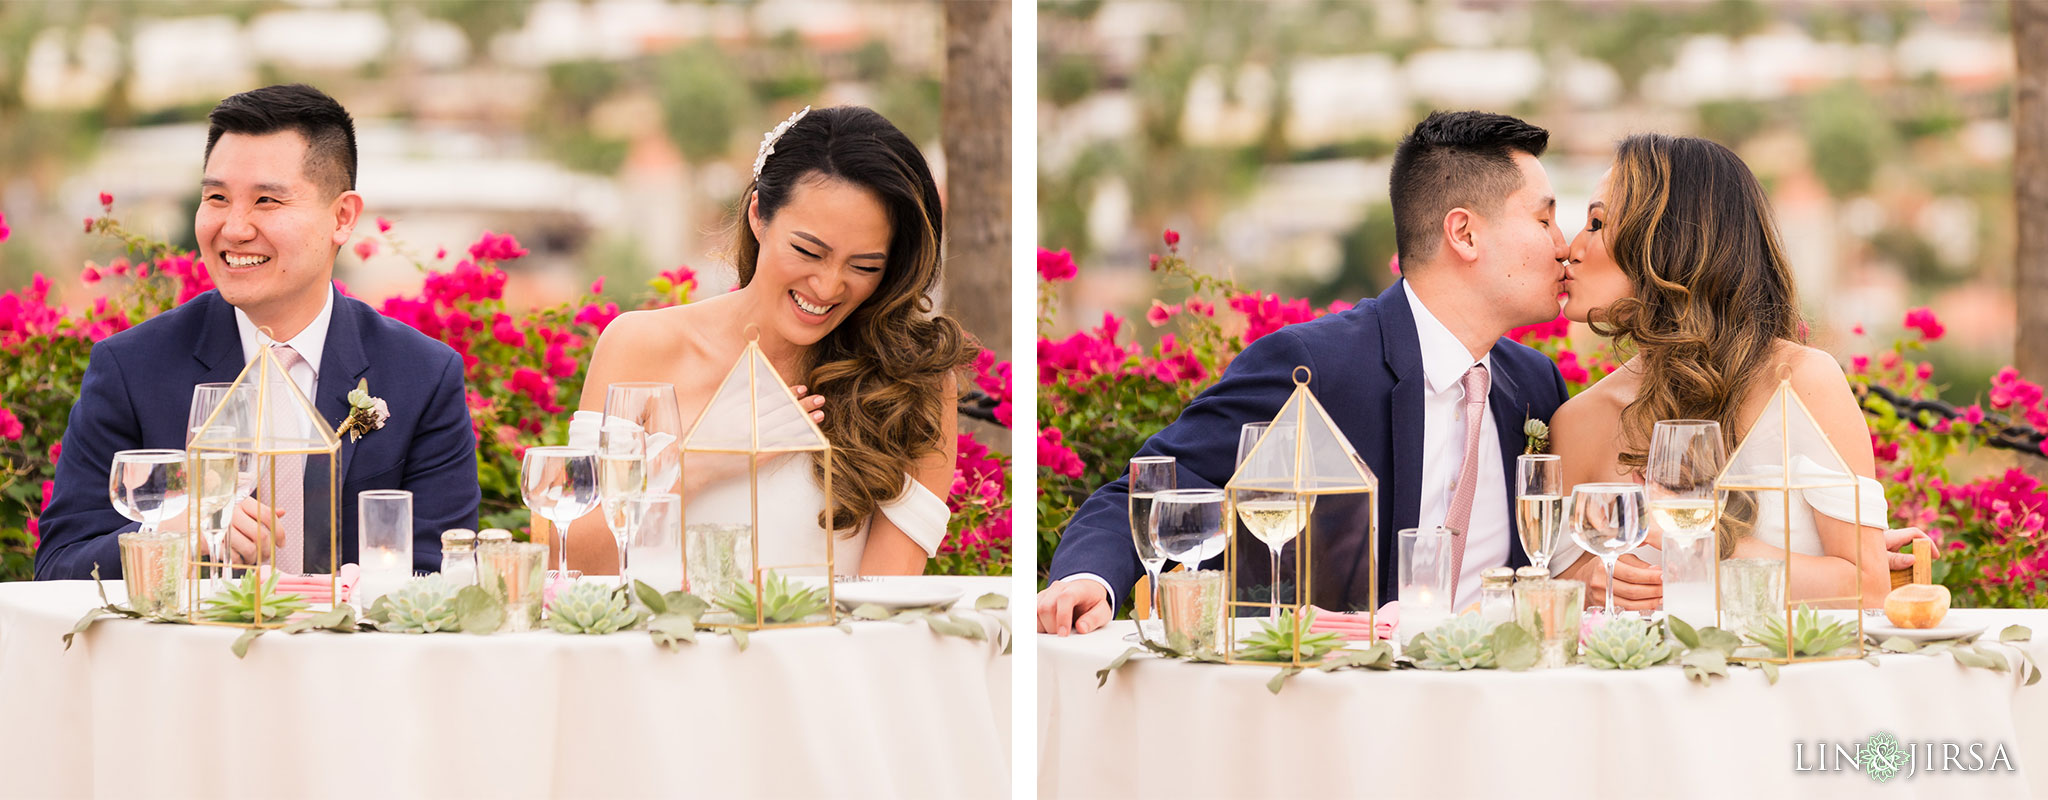 32 odonnell house palm springs wedding reception photography